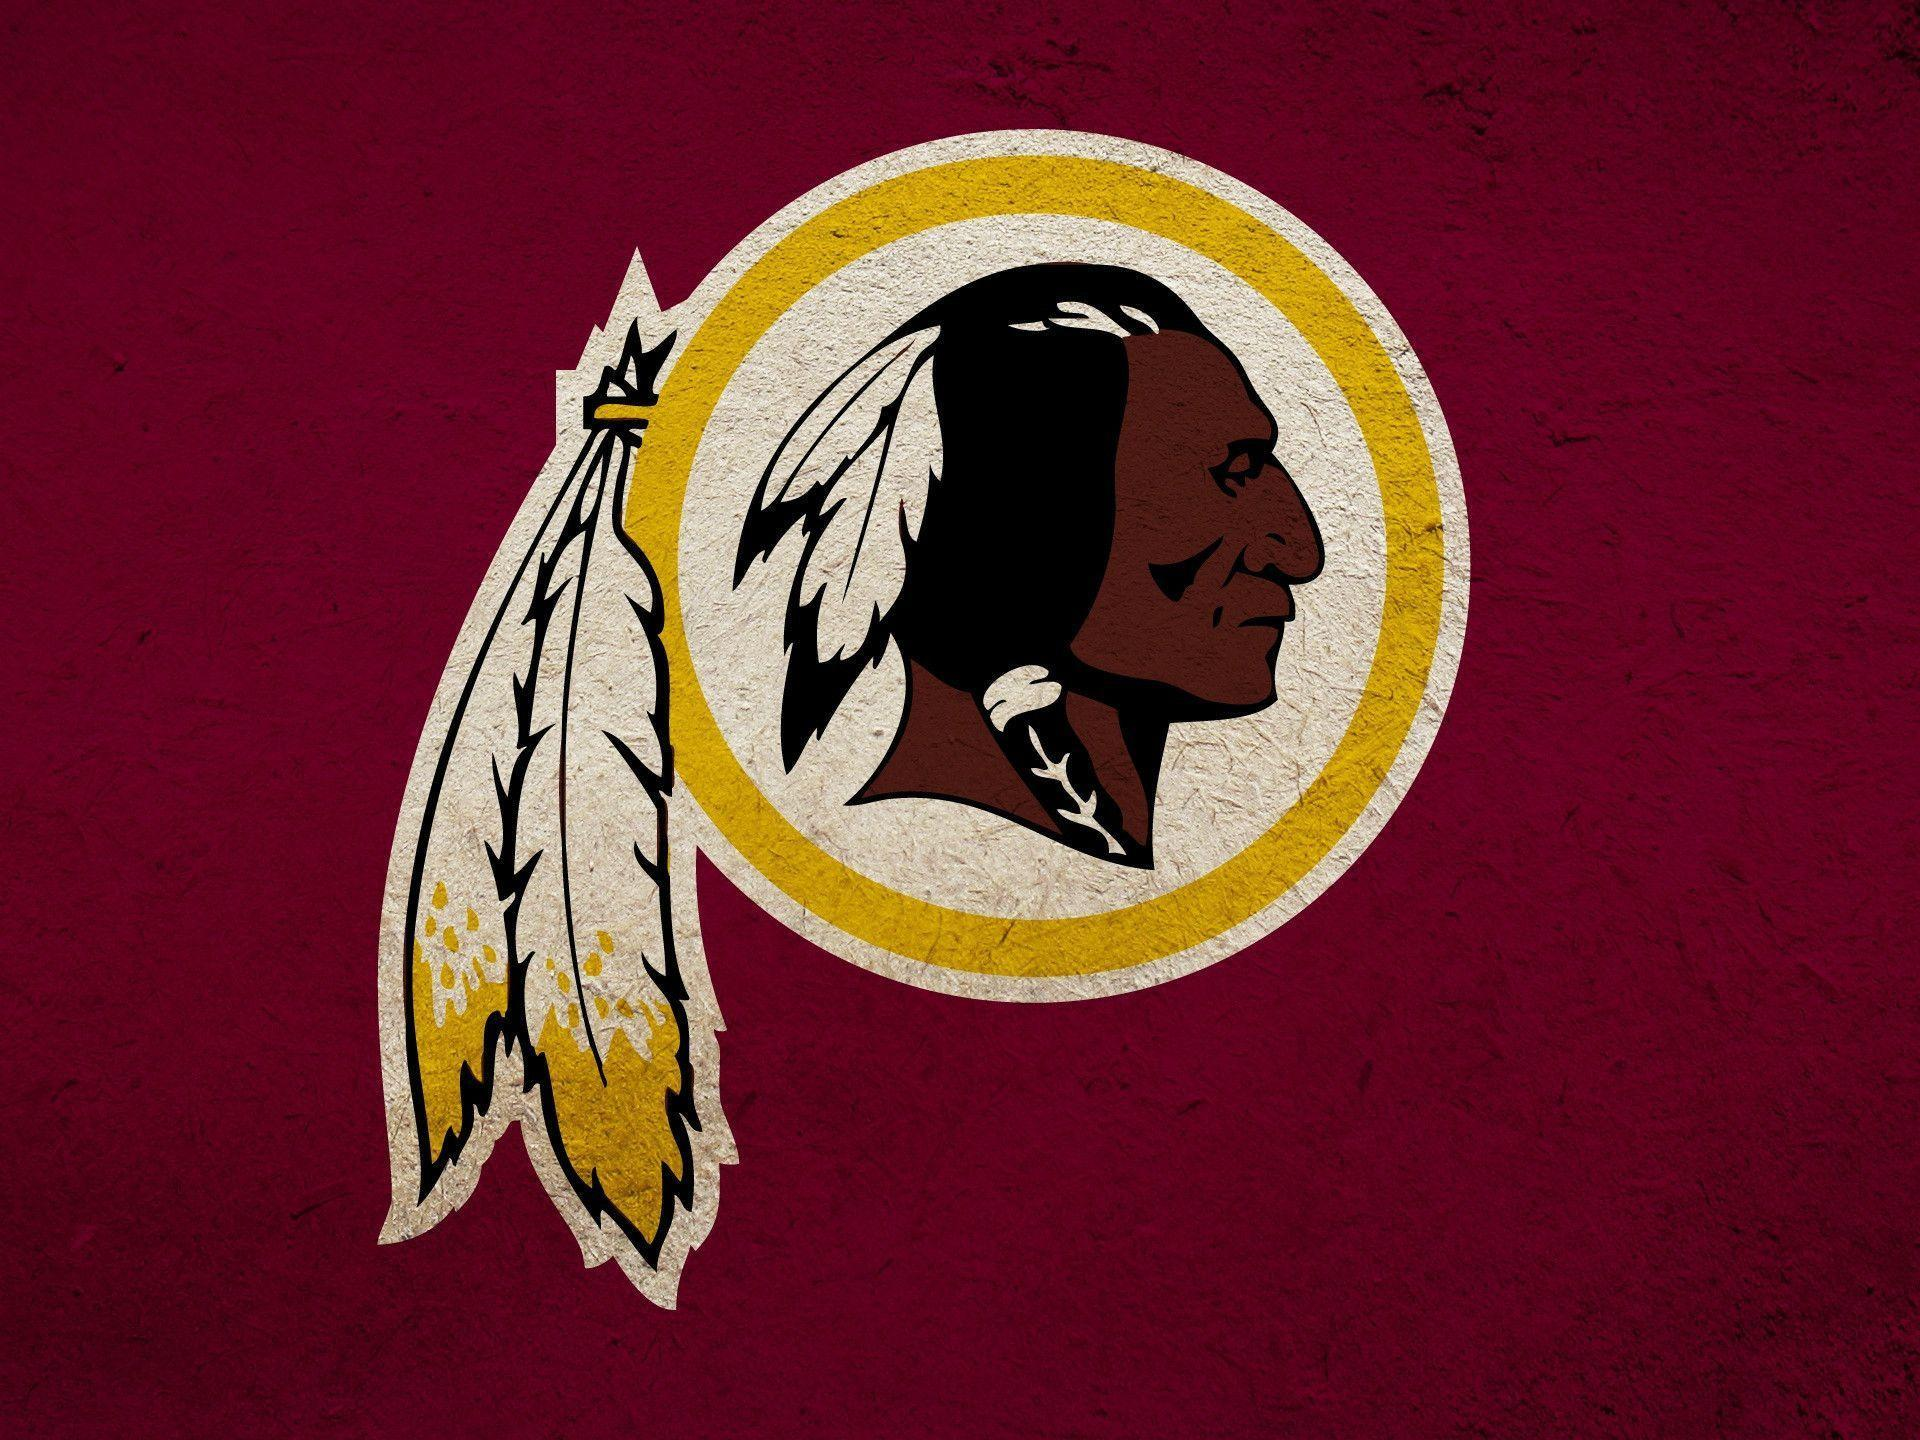 Washington Redskins Wallpapers Wallpaper Cave